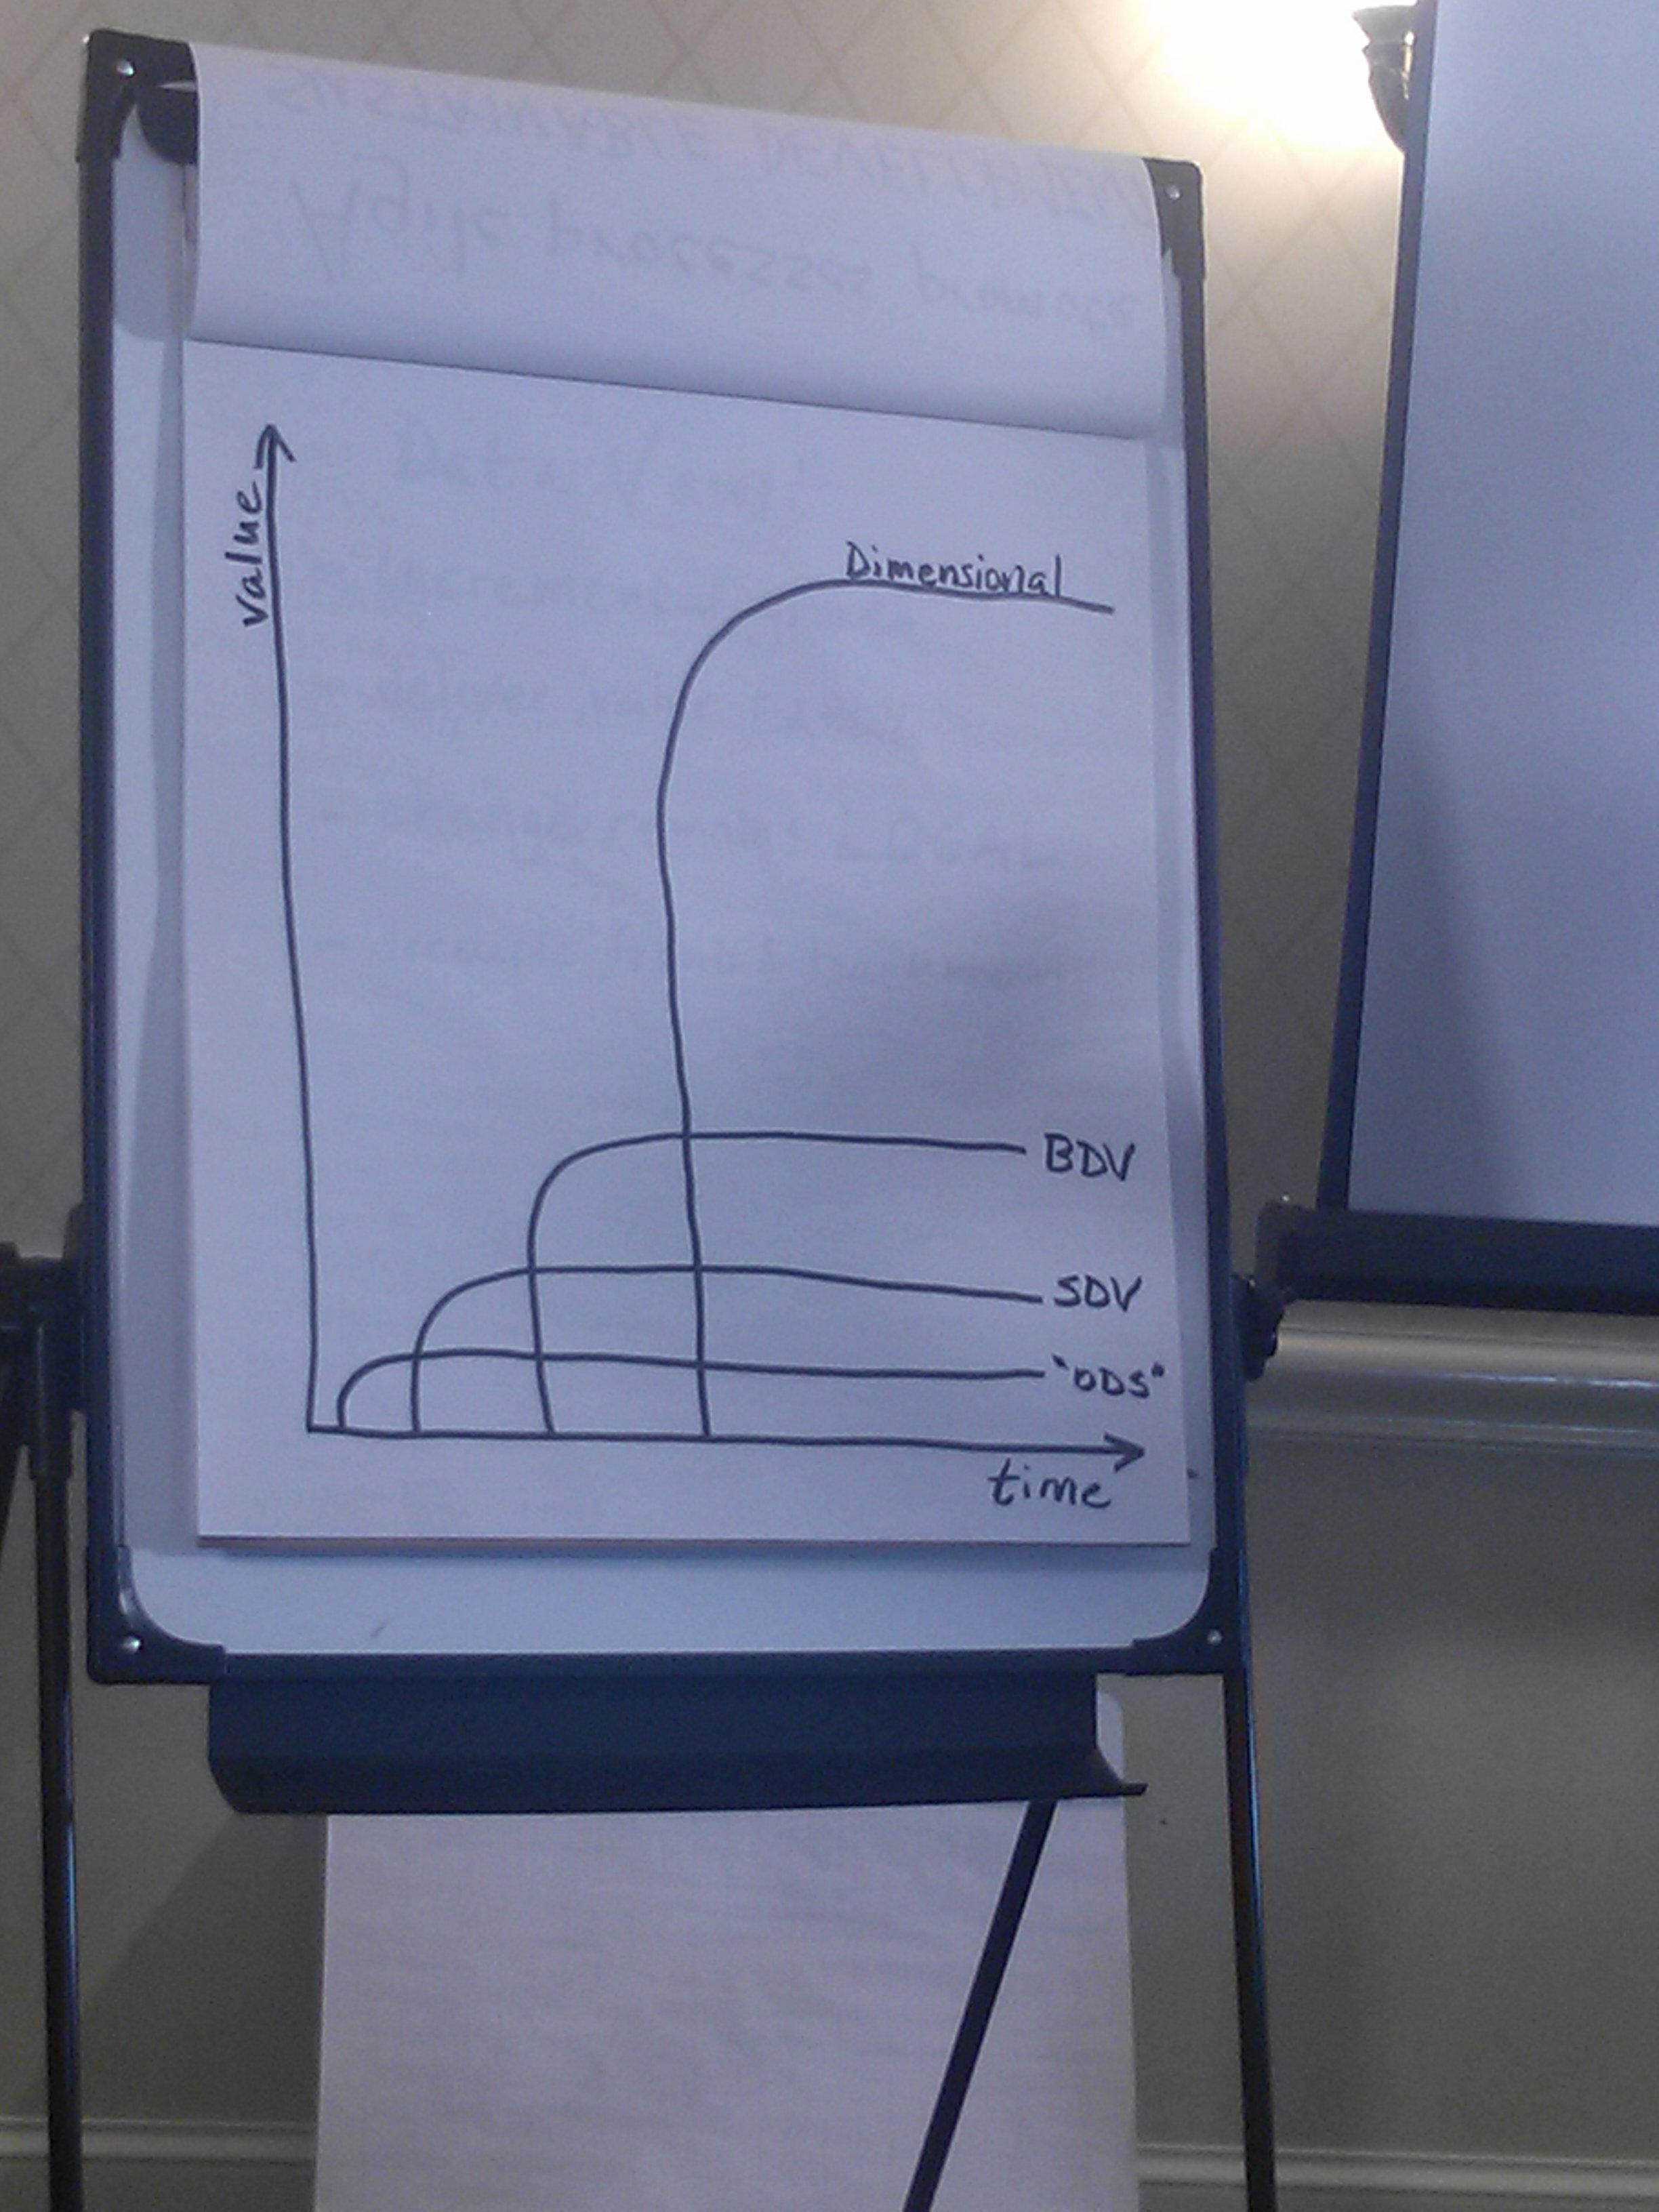 Tom drew this to show how much quicker we can deliver some value sooner